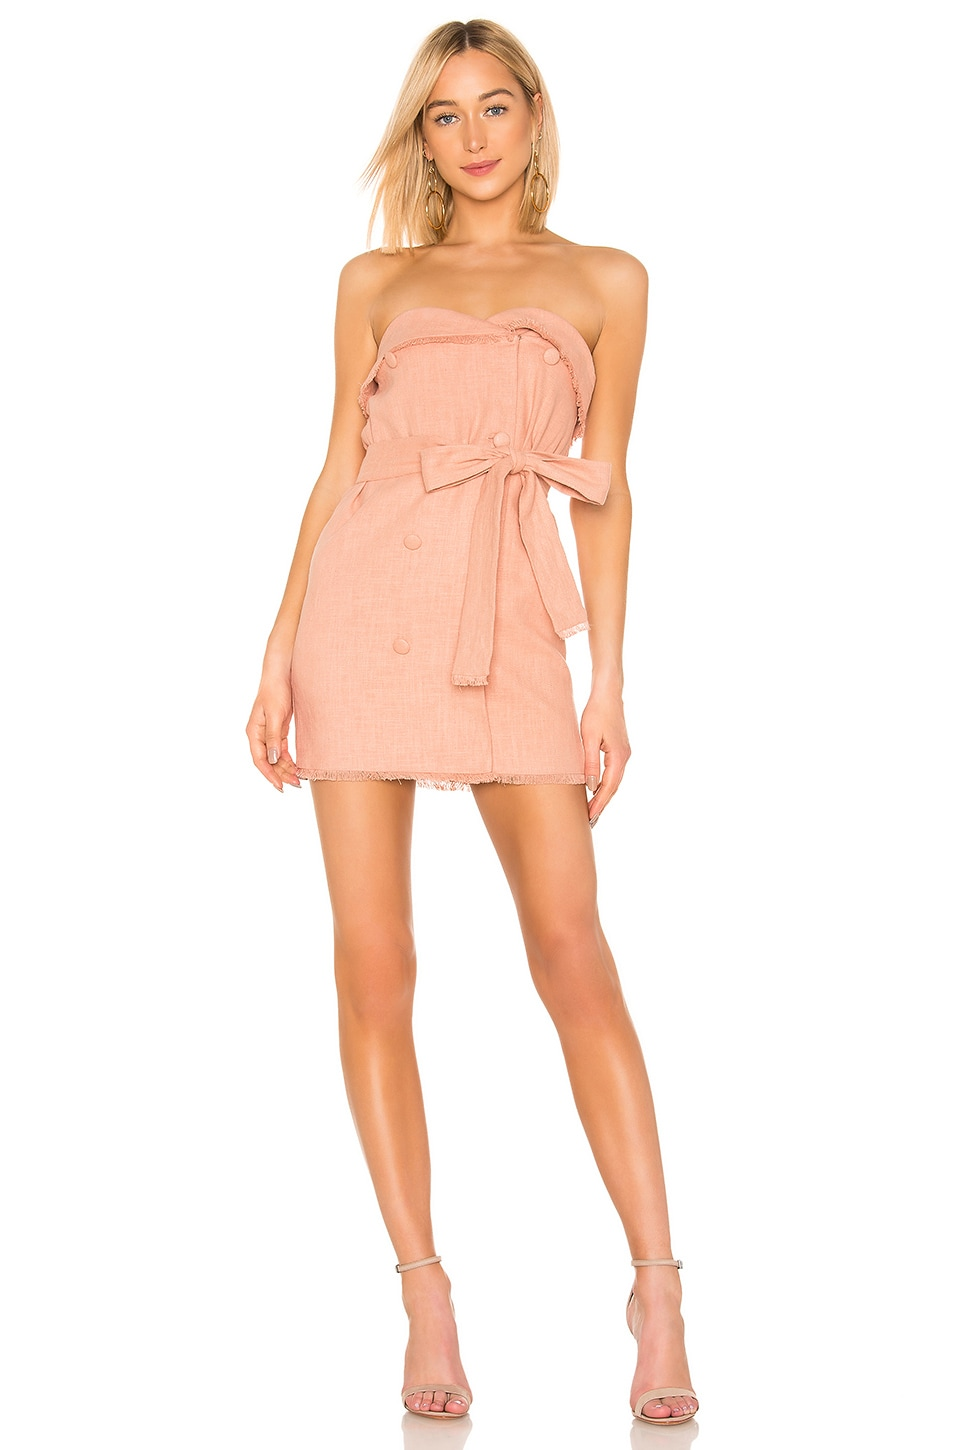 Lovers + Friends Nicole Mini Dress in Tan